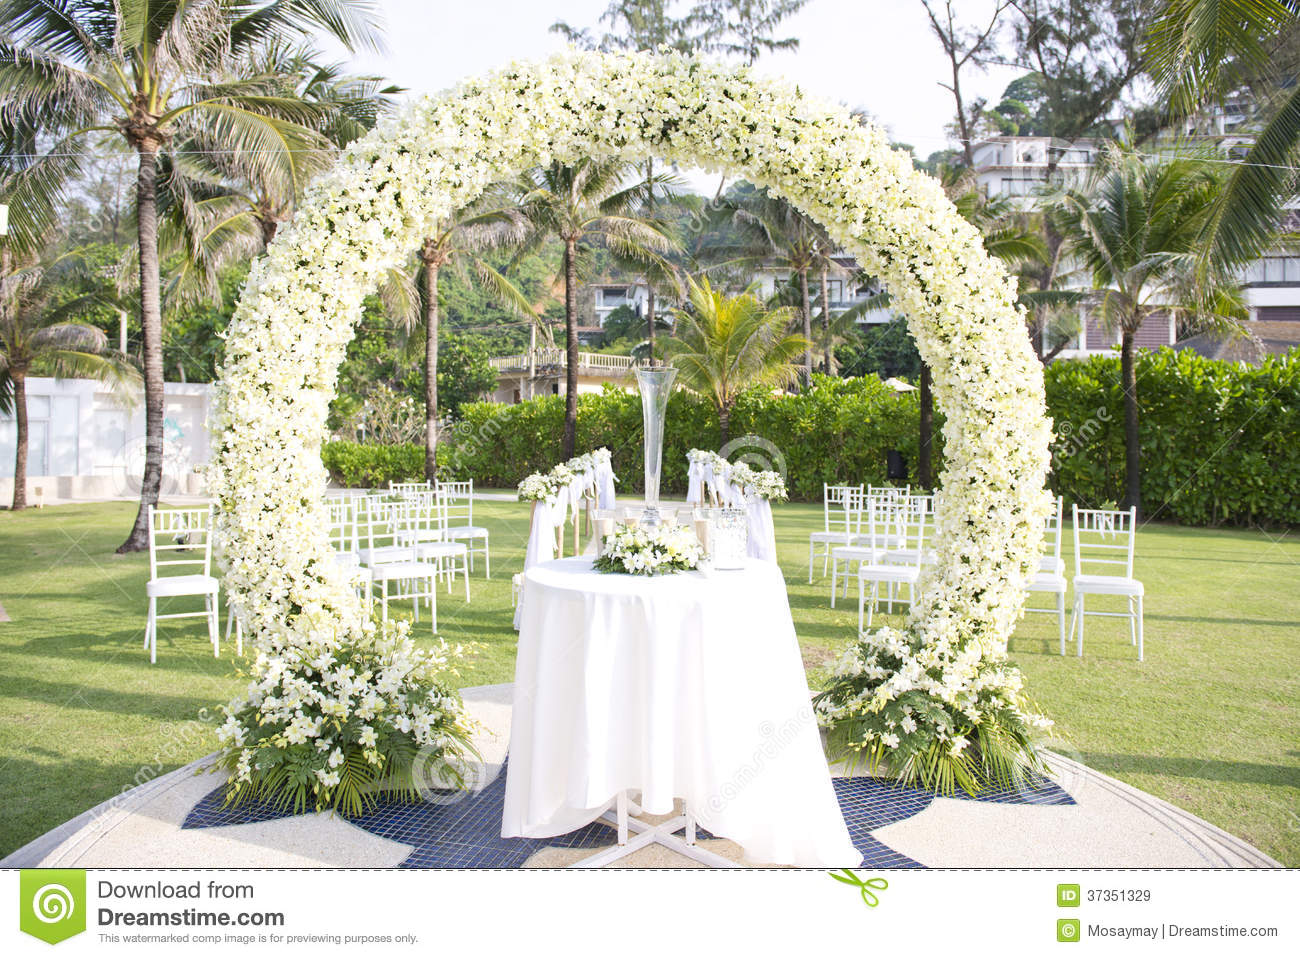 Wedding set up in garden inside beach royalty free stock images image 37351329 - Deco mariage dans un jardin orleans ...